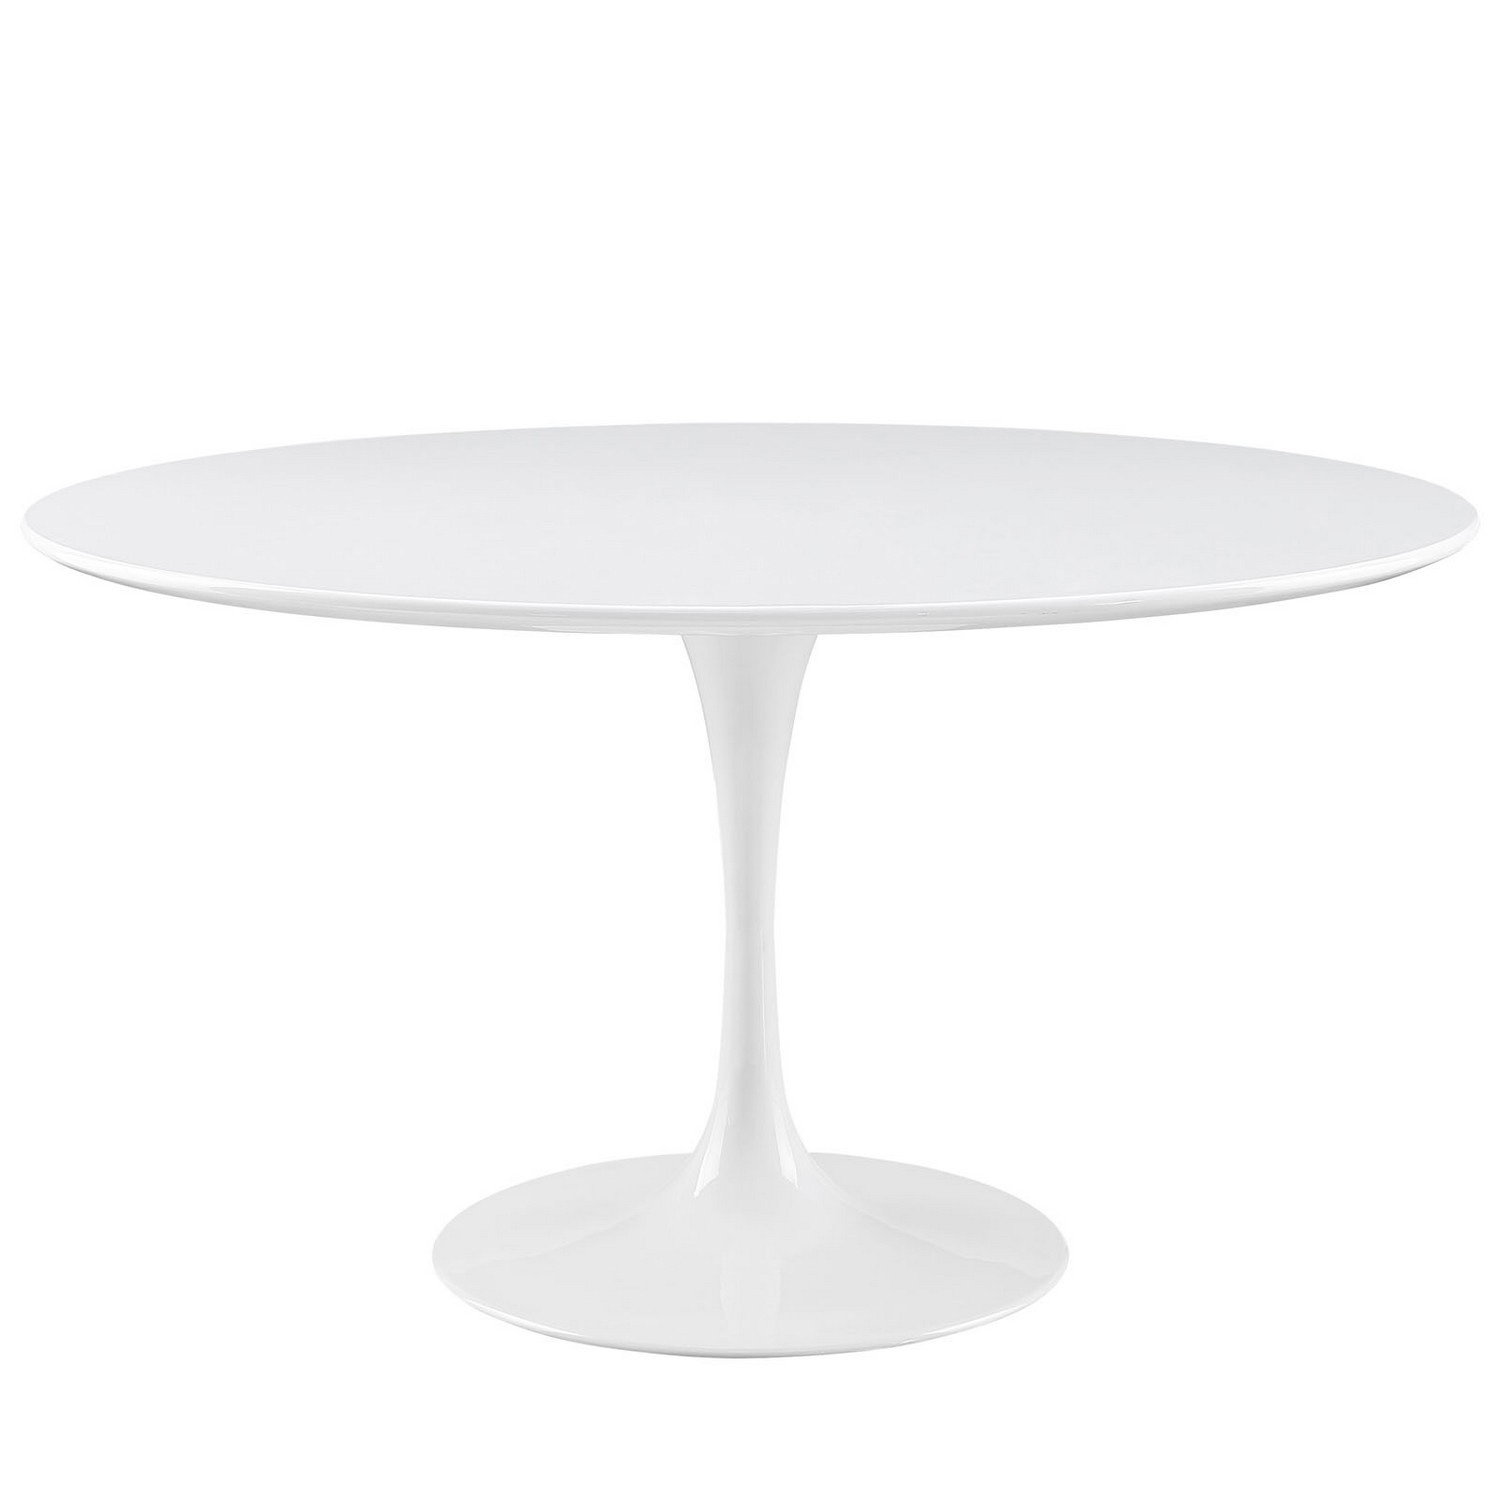 Modway Lippa 54 Wood Top Dining Table - White